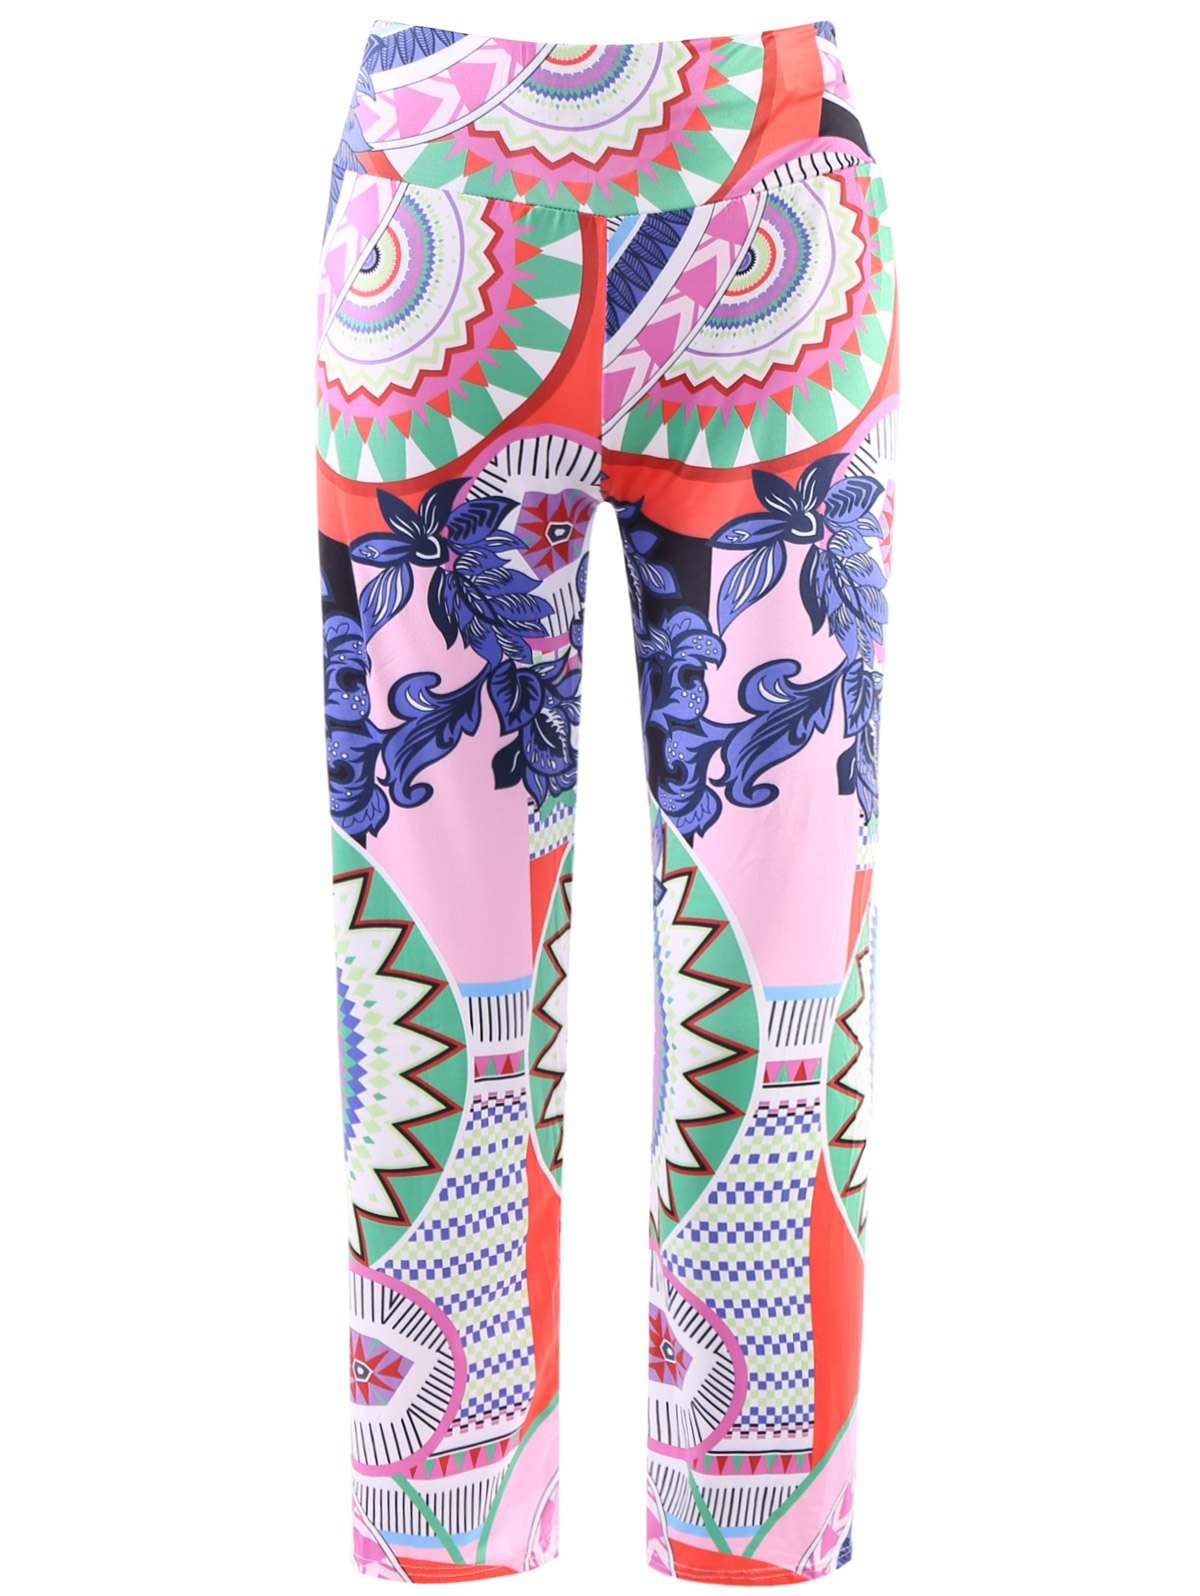 Fashionable Elastic Waist Loose-Fitting Printed Women's Exumas Pants - COLORMIX M